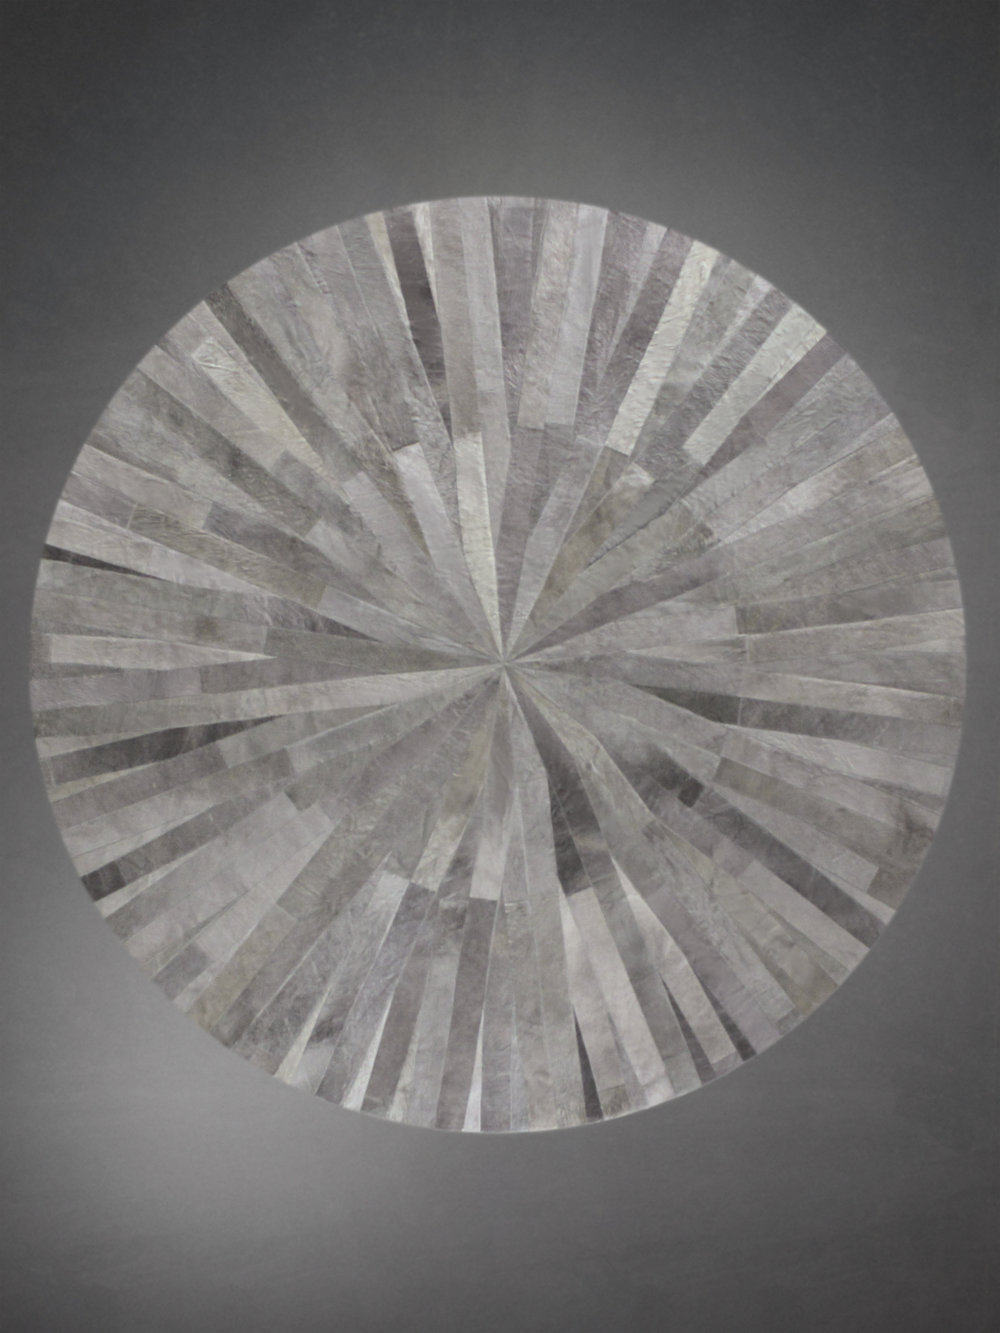 Contemporary designed fur circle rug in a geometric woven pattern in gray and silver.